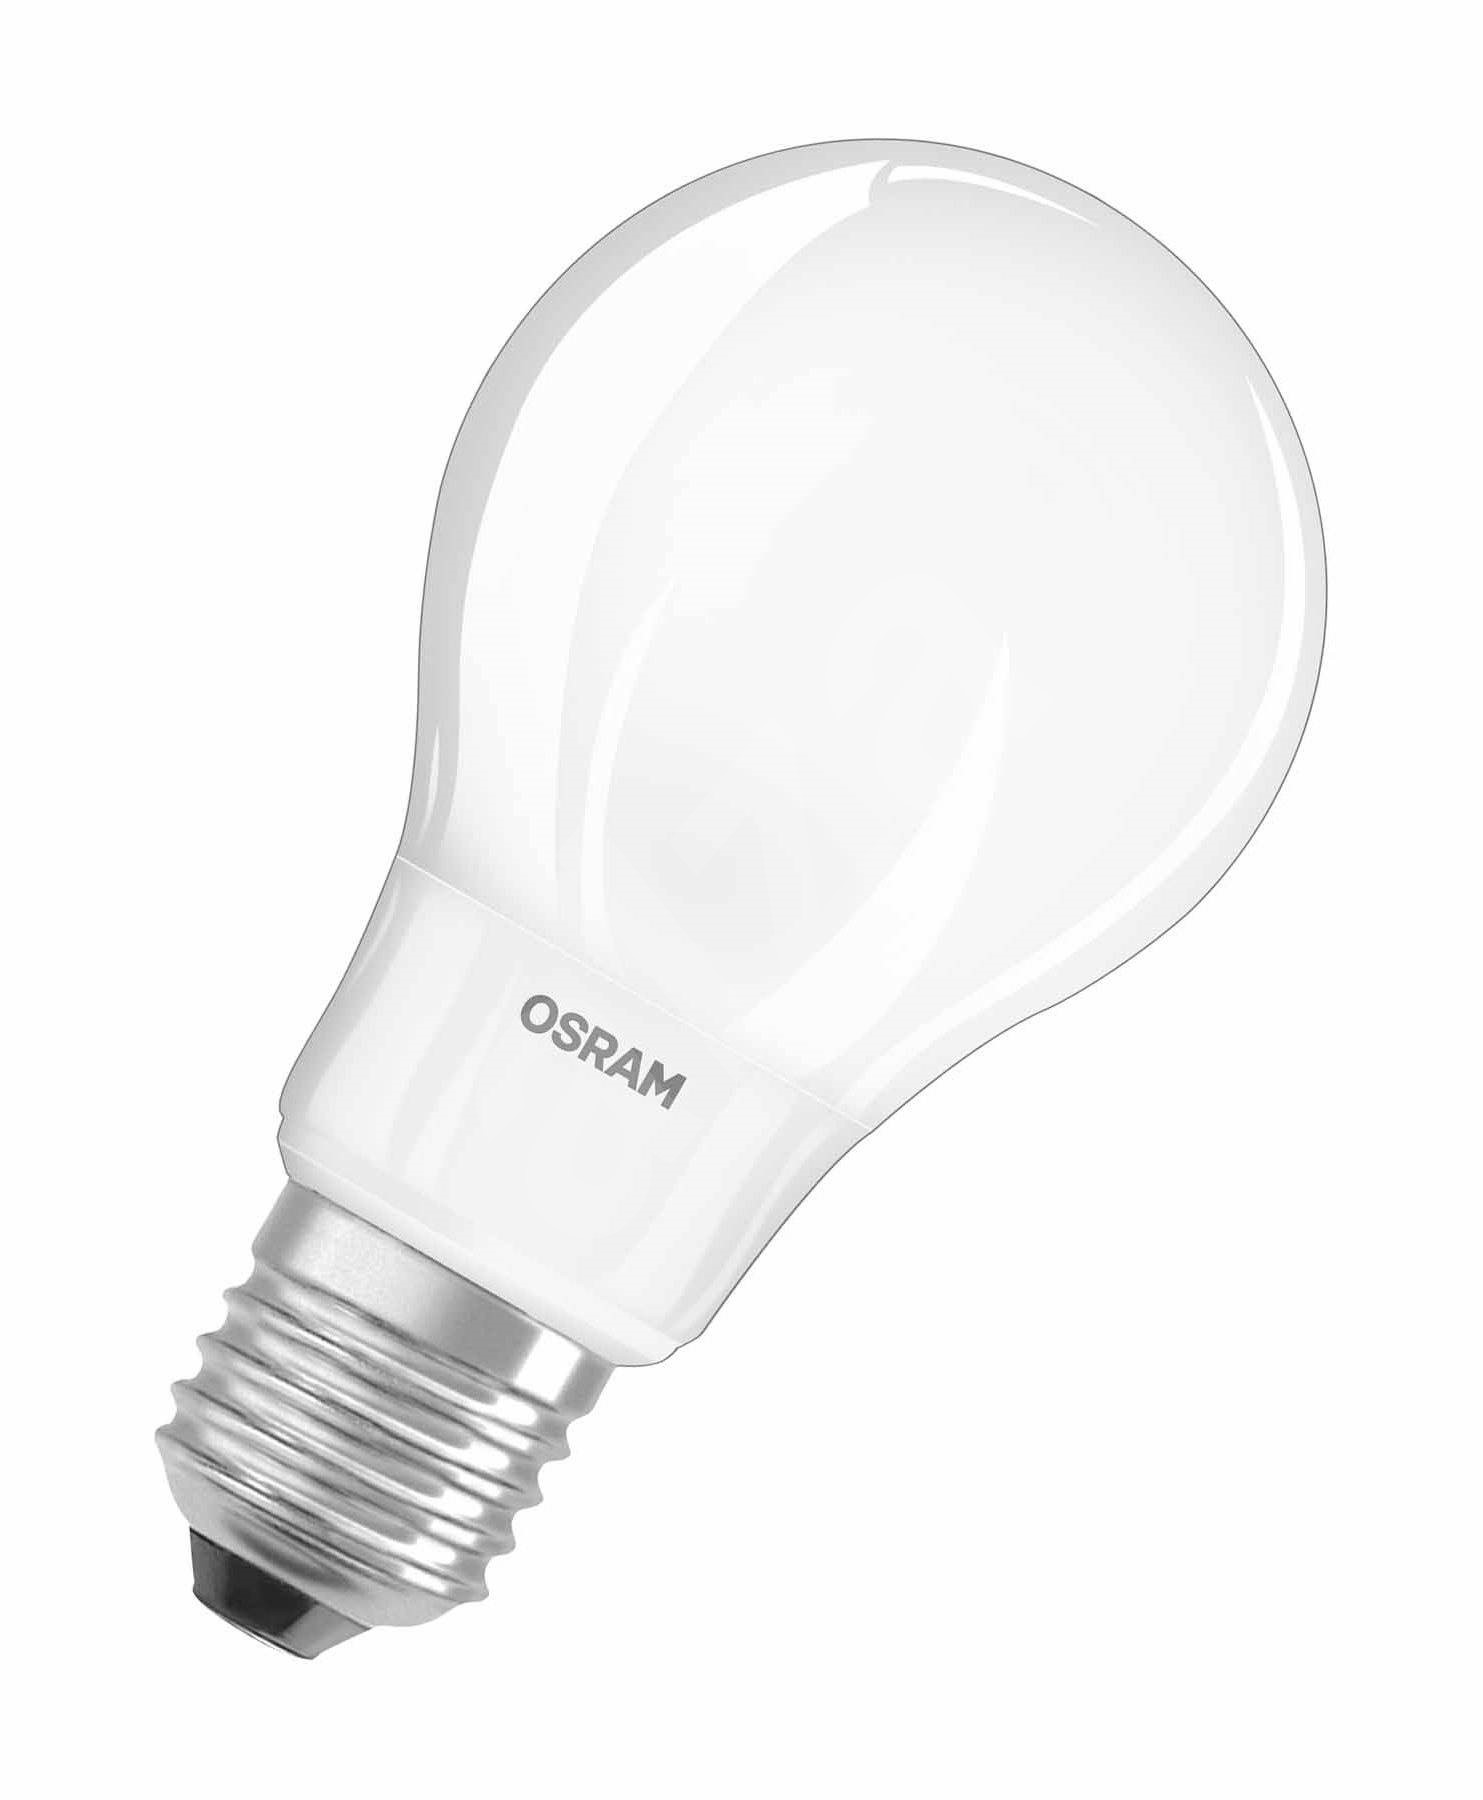 osram 6w e27 retrofit led bulb. Black Bedroom Furniture Sets. Home Design Ideas